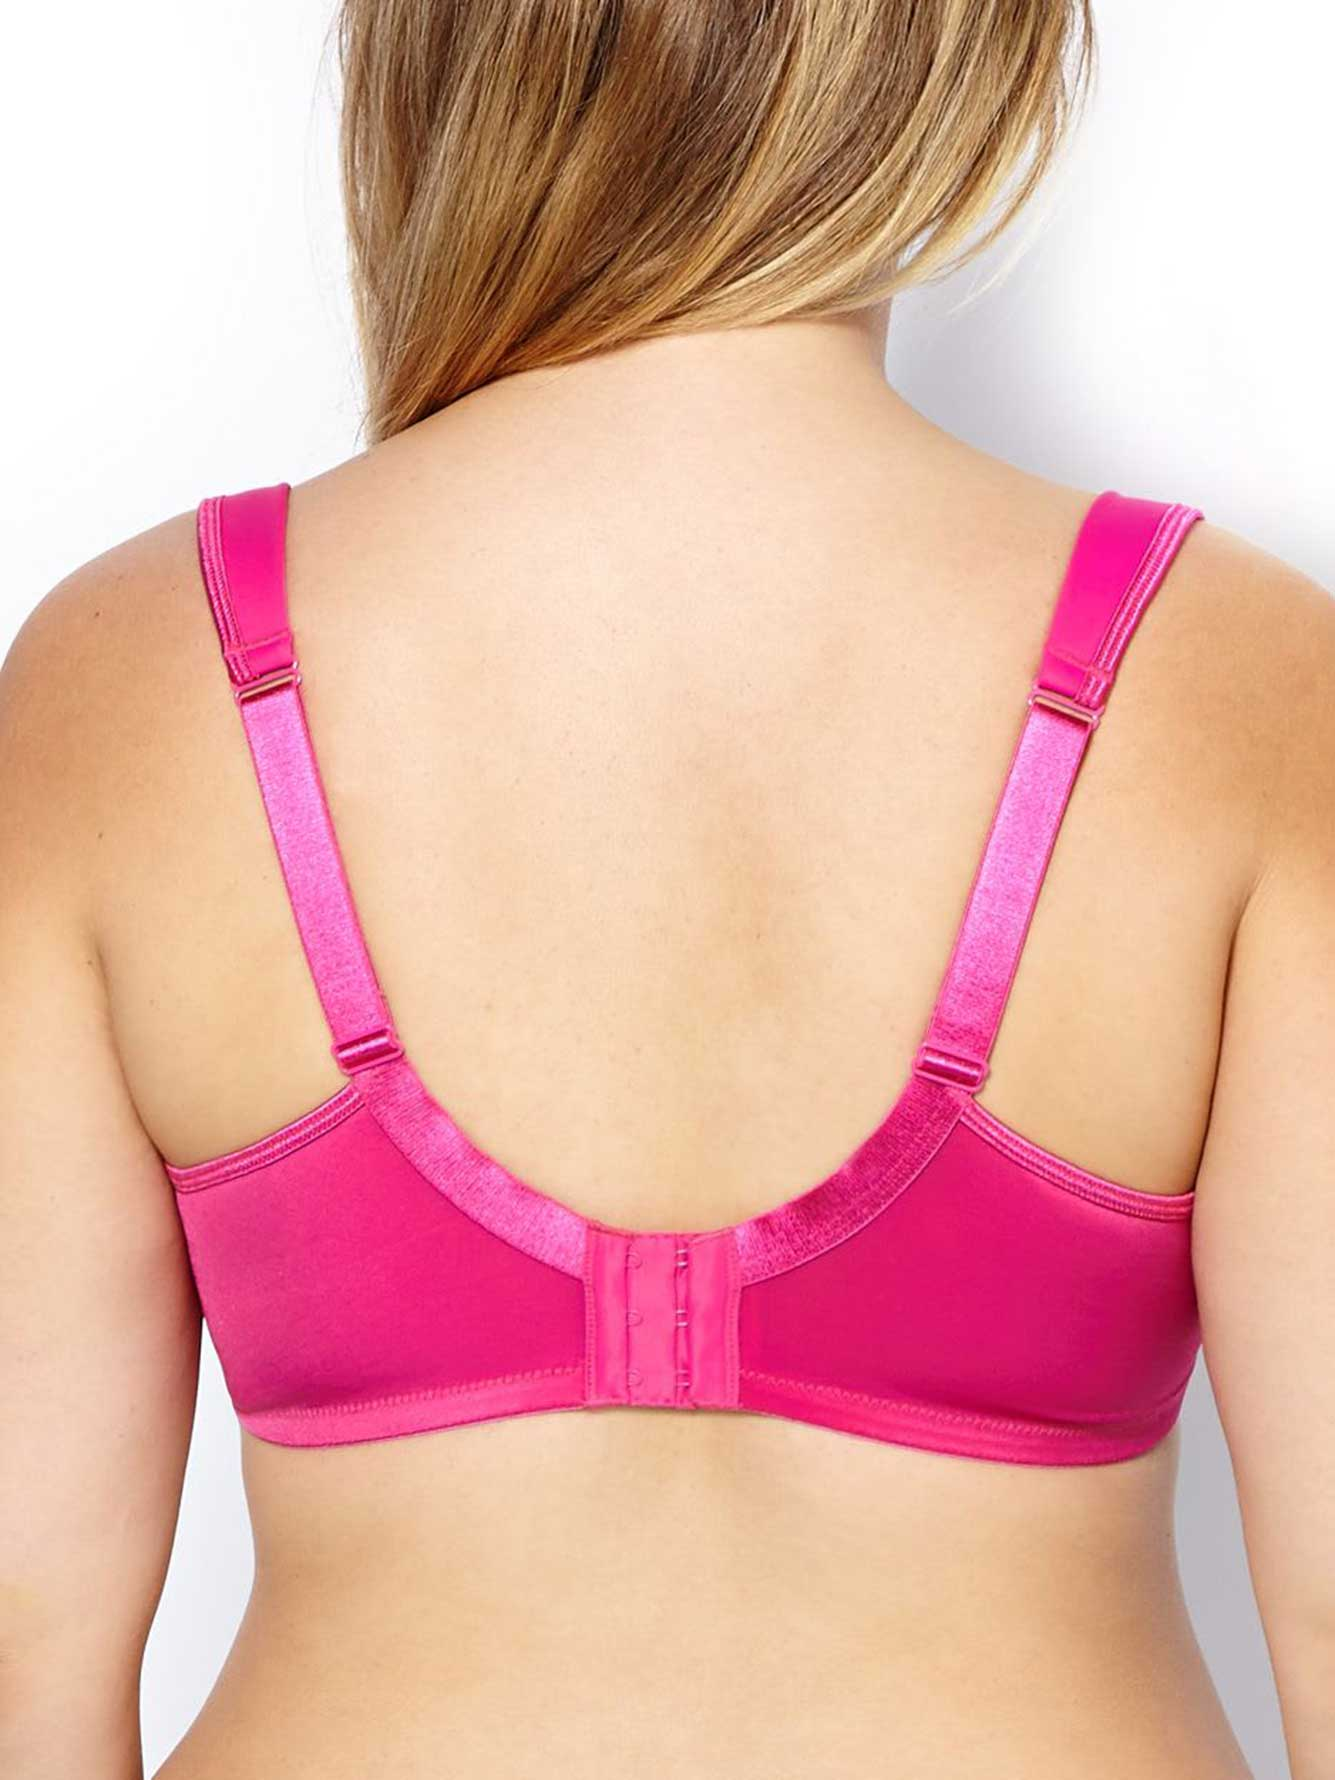 A great T-shirt bra is not the easiest thing to find. In an ideal world, it would be seamless, fit as comfortably at the beginning of the day as it does the end, and for the love of God simply not.